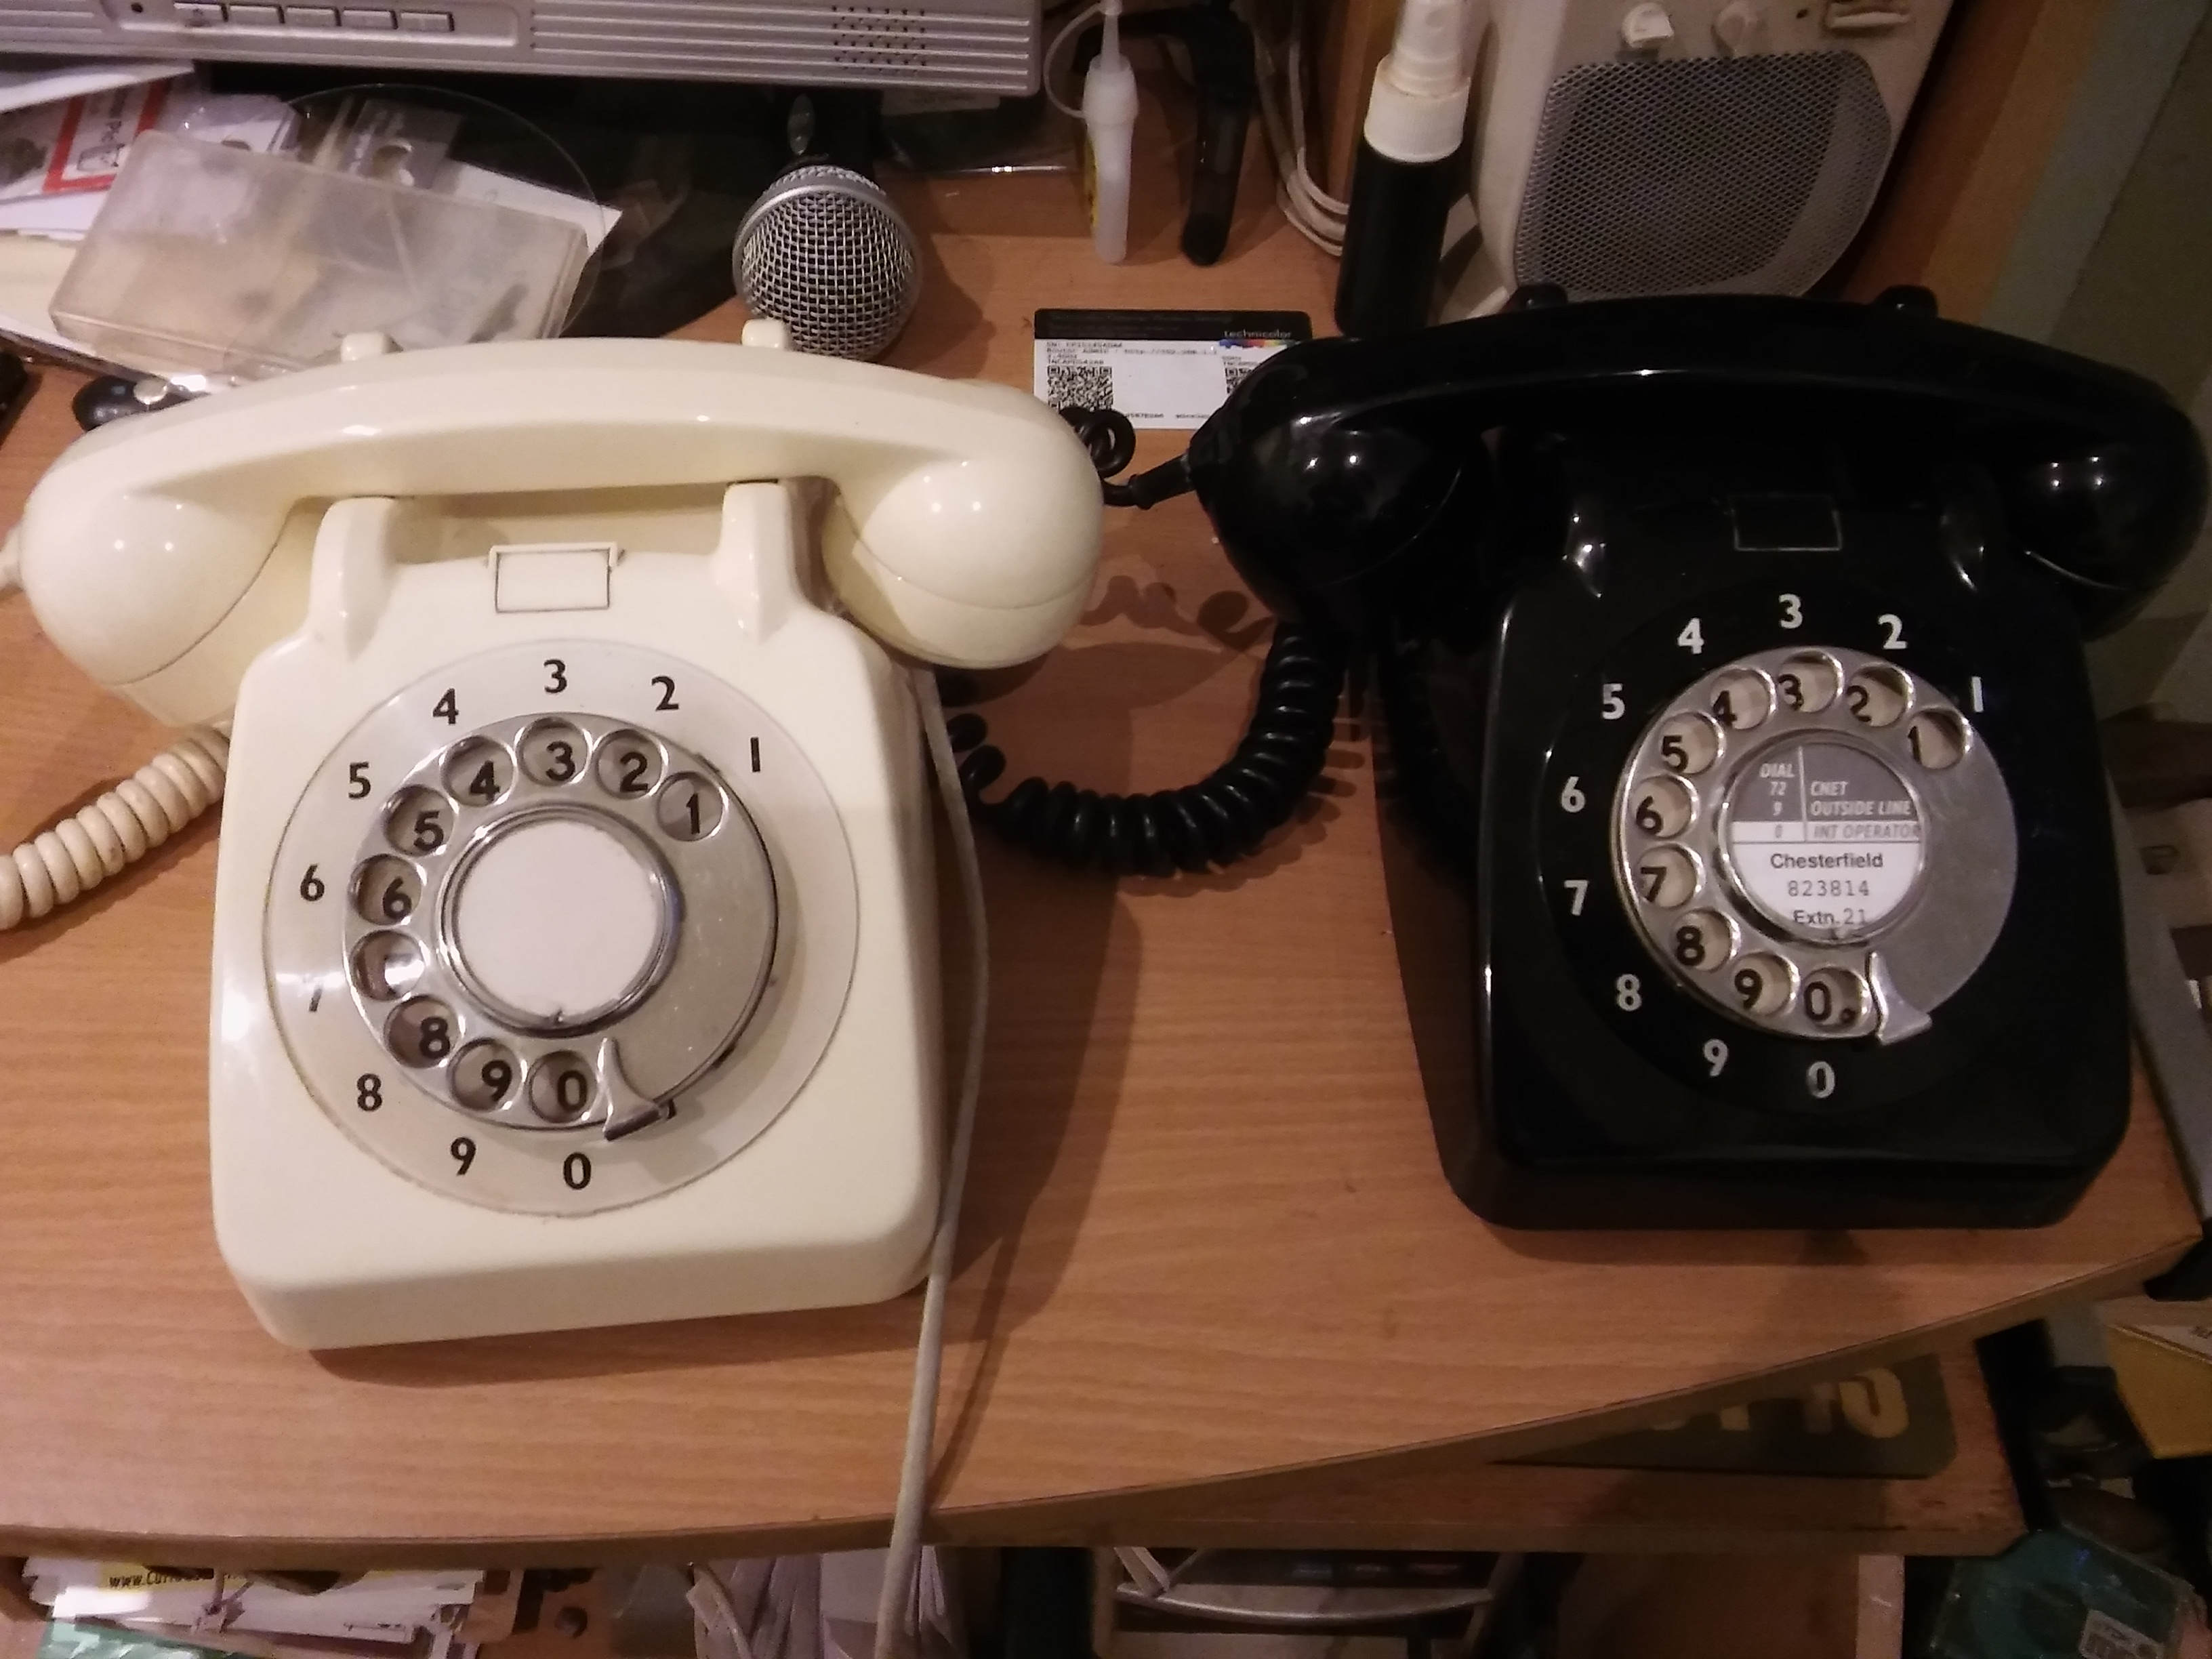 Two 'modern telephones' as the GPO called them. The one on the left dates from 1959 and is still working 57 years later!